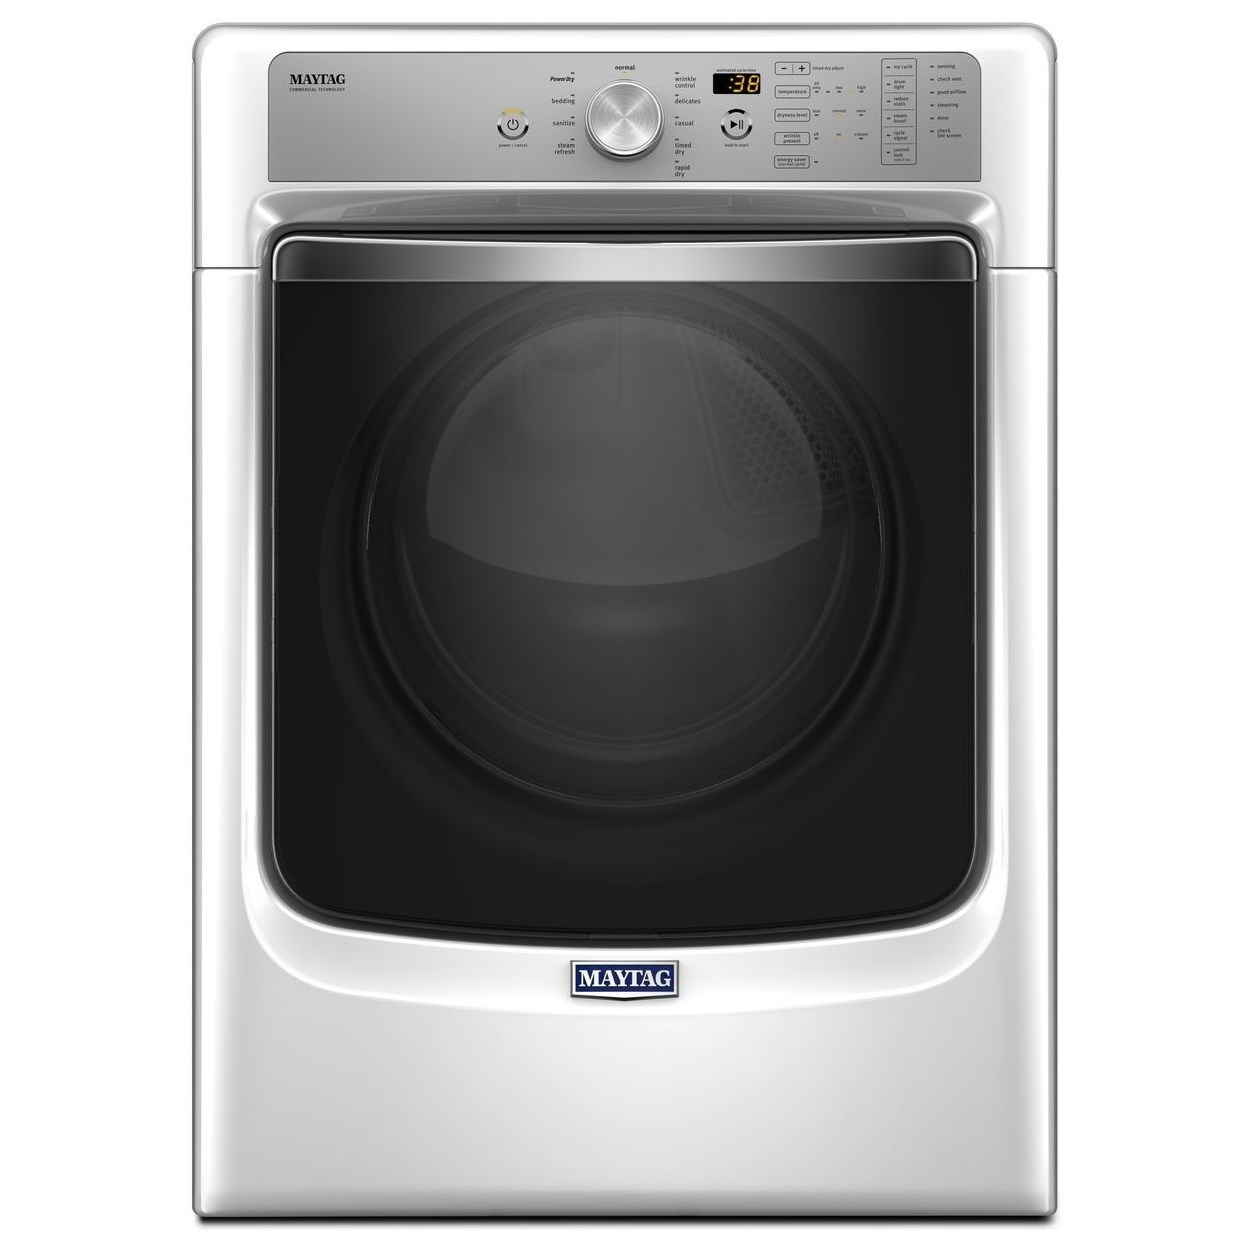 Maytag Front Load Gas Dryer 8200 Series 7.4 Cu. Ft Large Capacity Dryer - Item Number: MGD8200FW